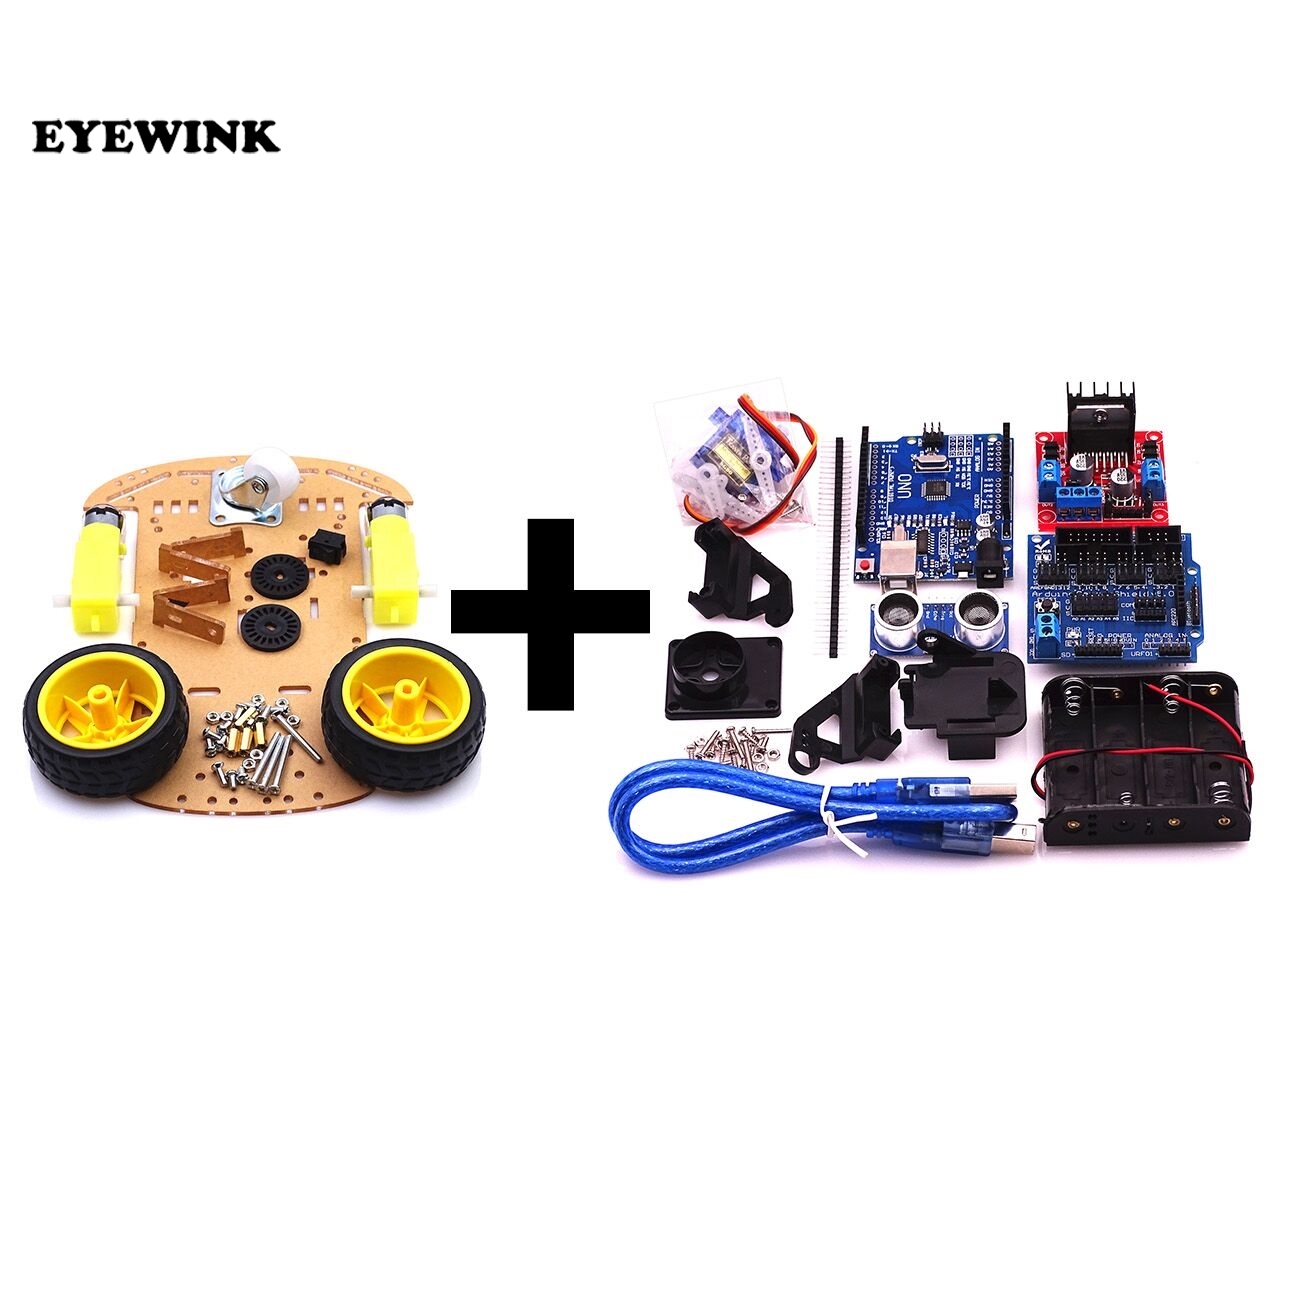 Active Components 2019 New Style Avoidance Tracking Motor Smart Robot Car Chassis Kit Speed Encoder Battery Box 2wd Ultrasonic Module For Arduino Kit 2019 New Fashion Style Online